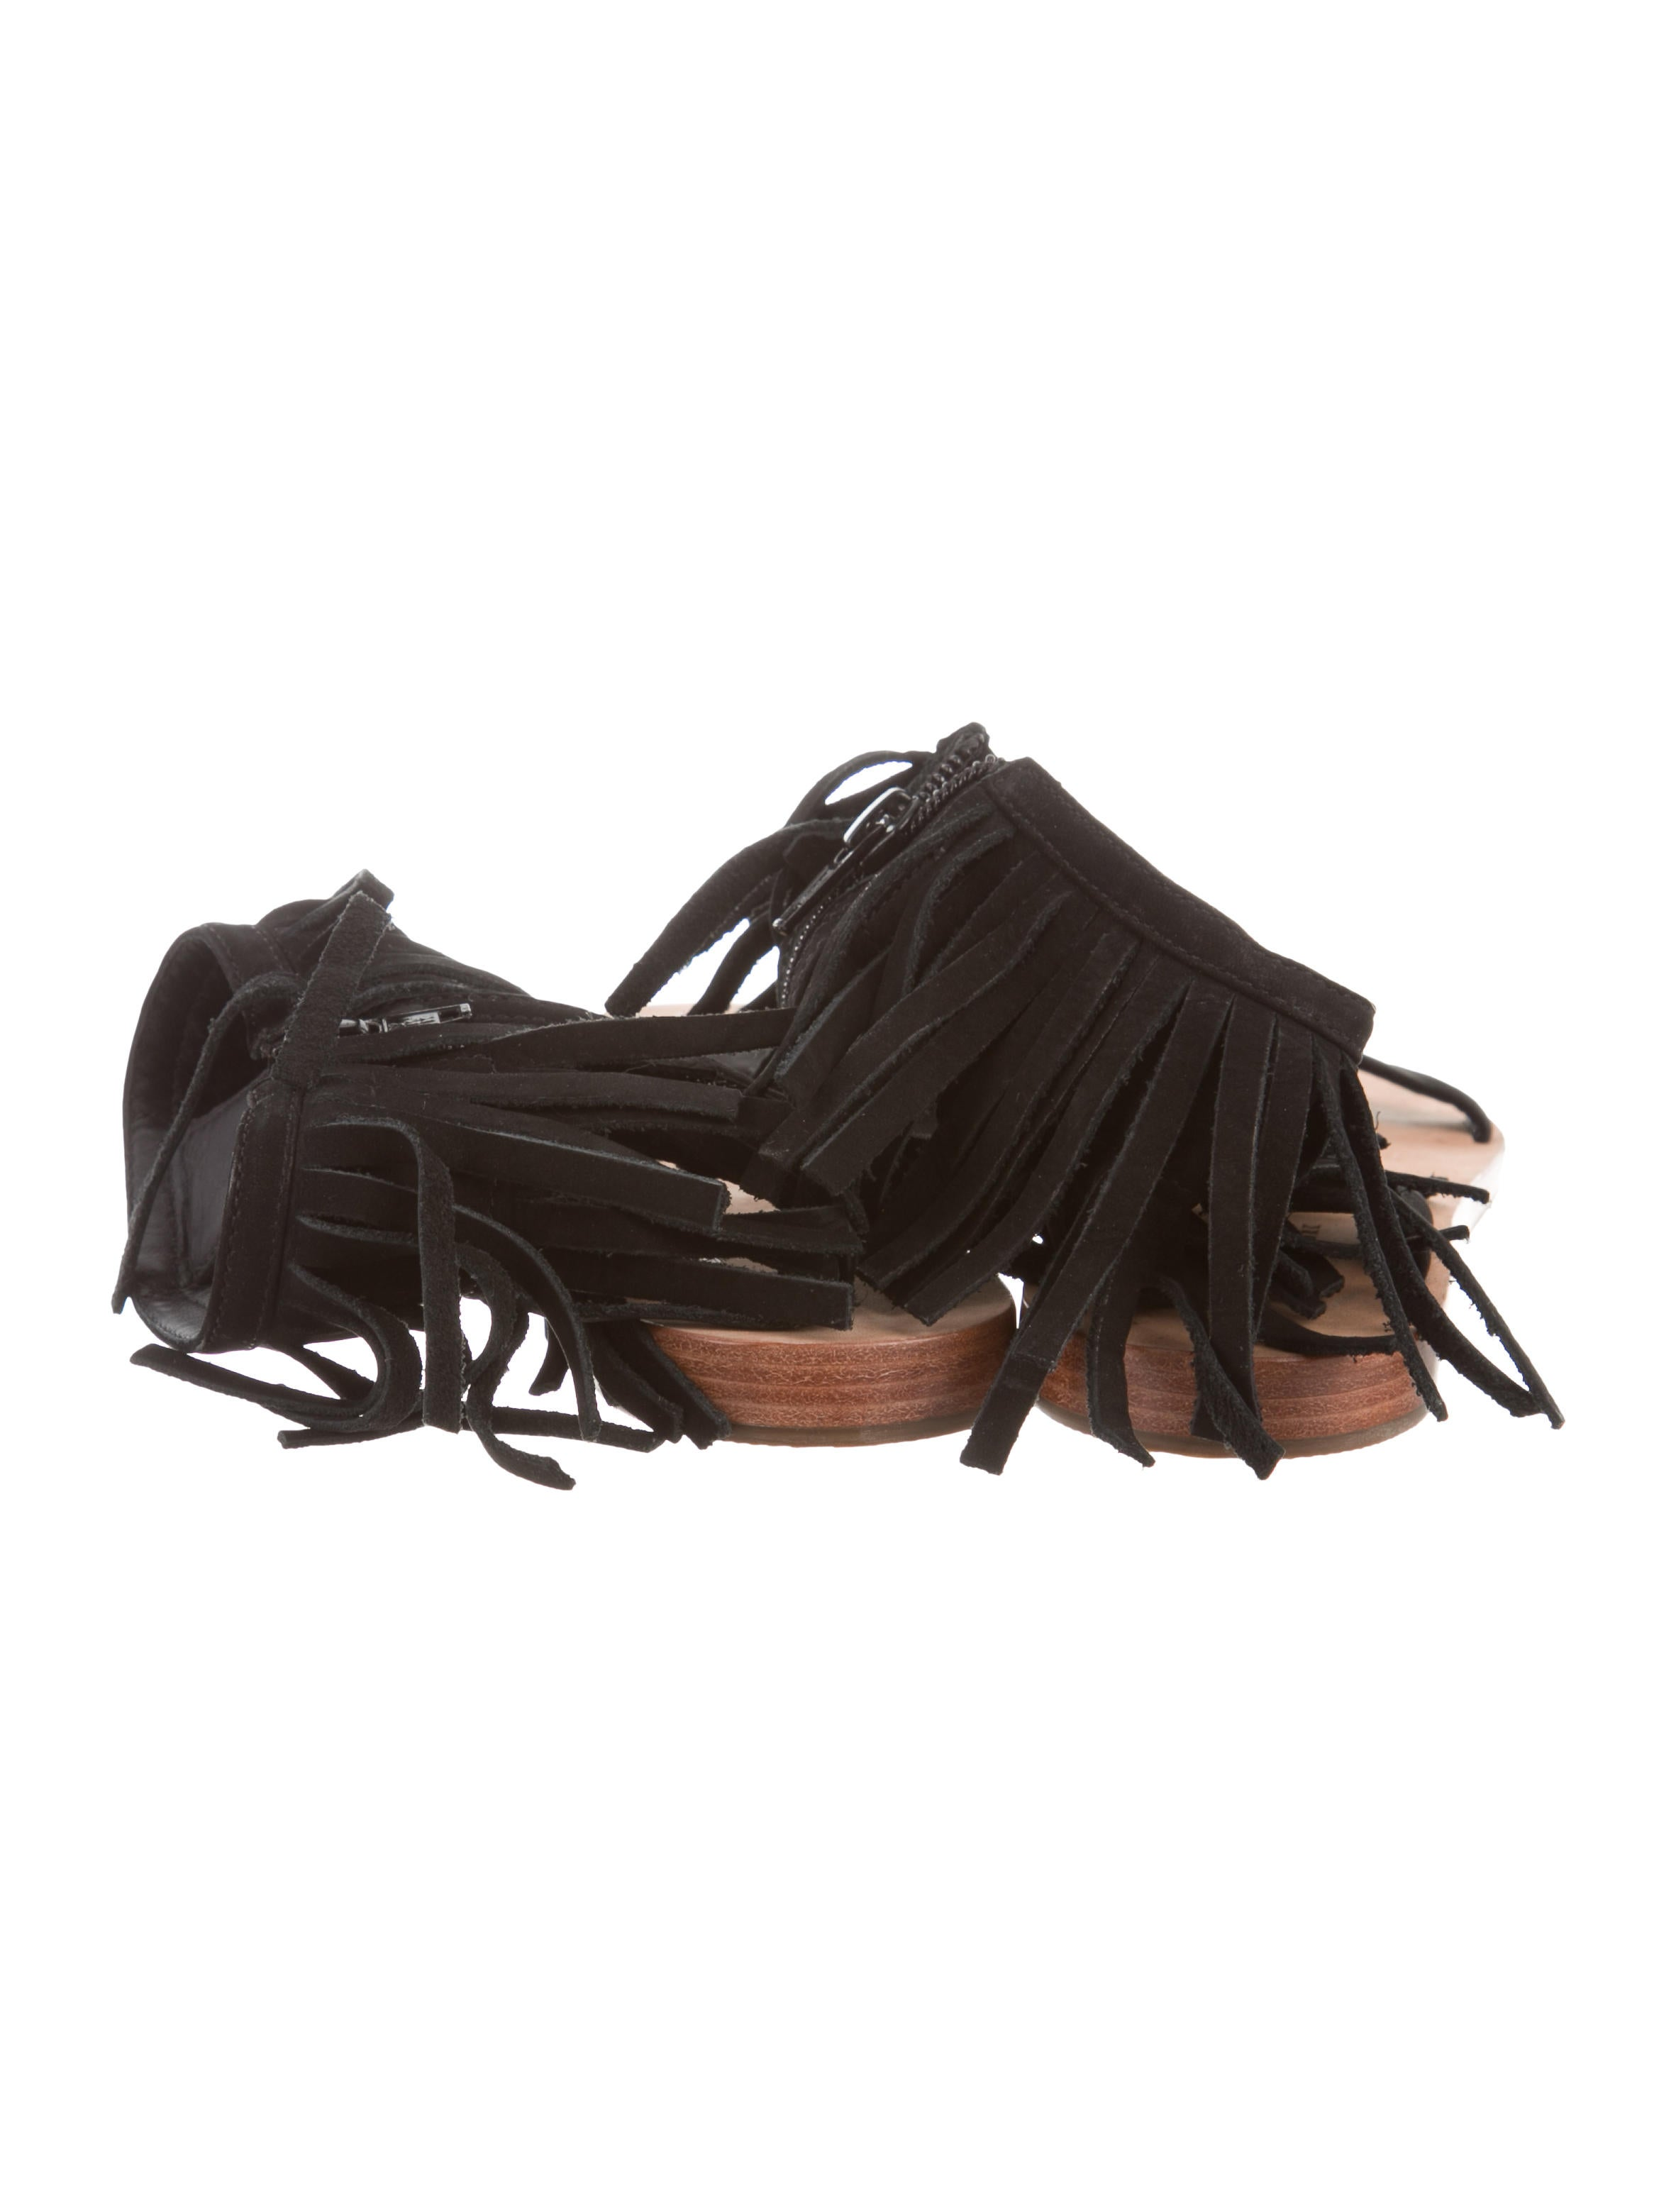 76b2eef4ca5d Kate Spade New York Halle Fringe Sandals - Shoes - WKA89325